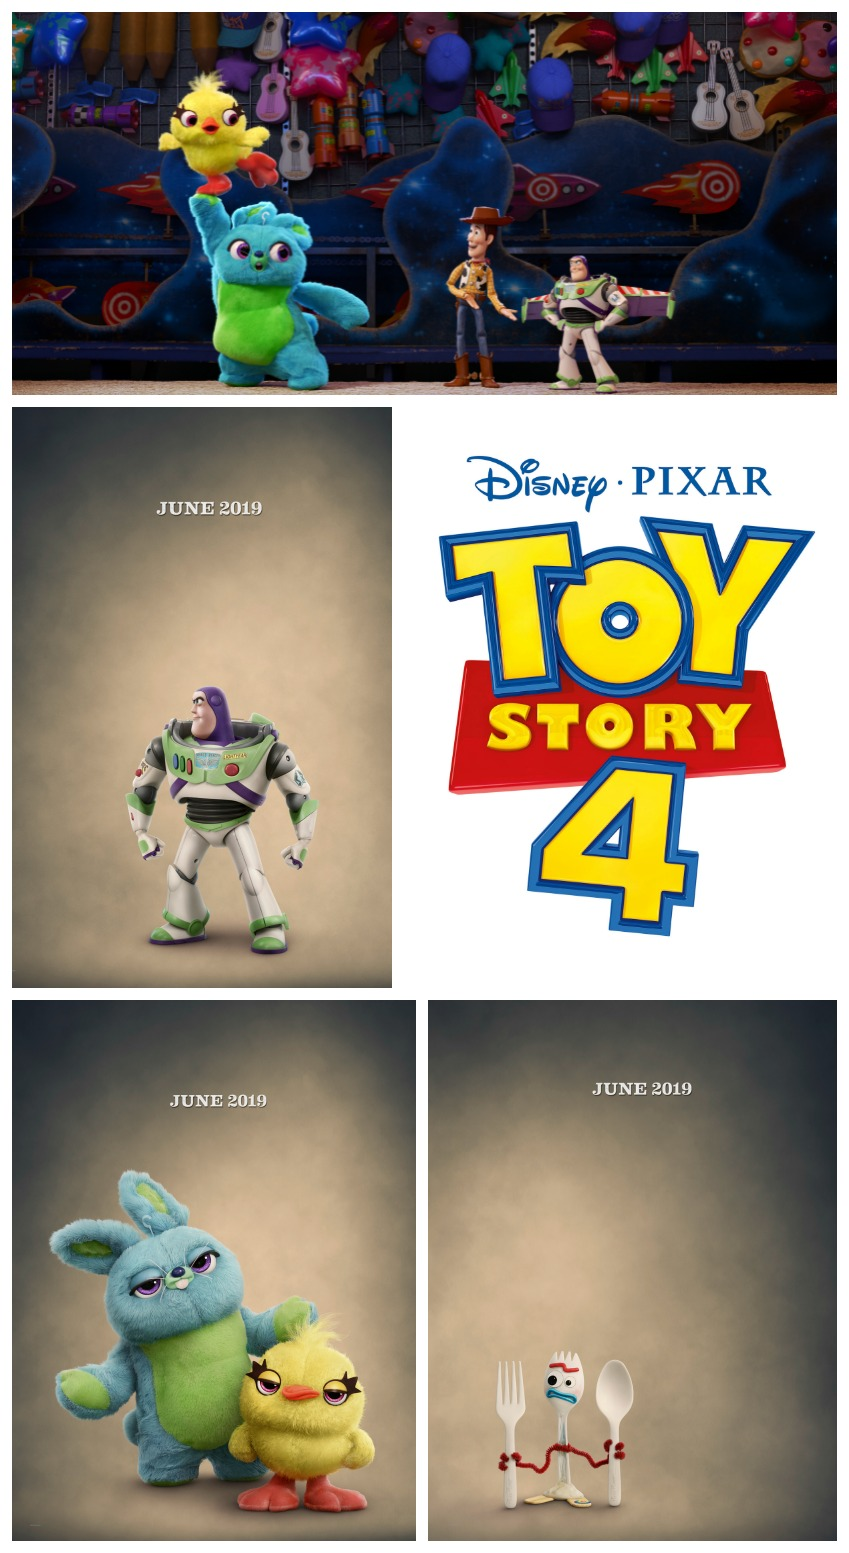 TOY STORY 4 Teaser Trailer and Character Posters! #ToyStory4 #disney #movies